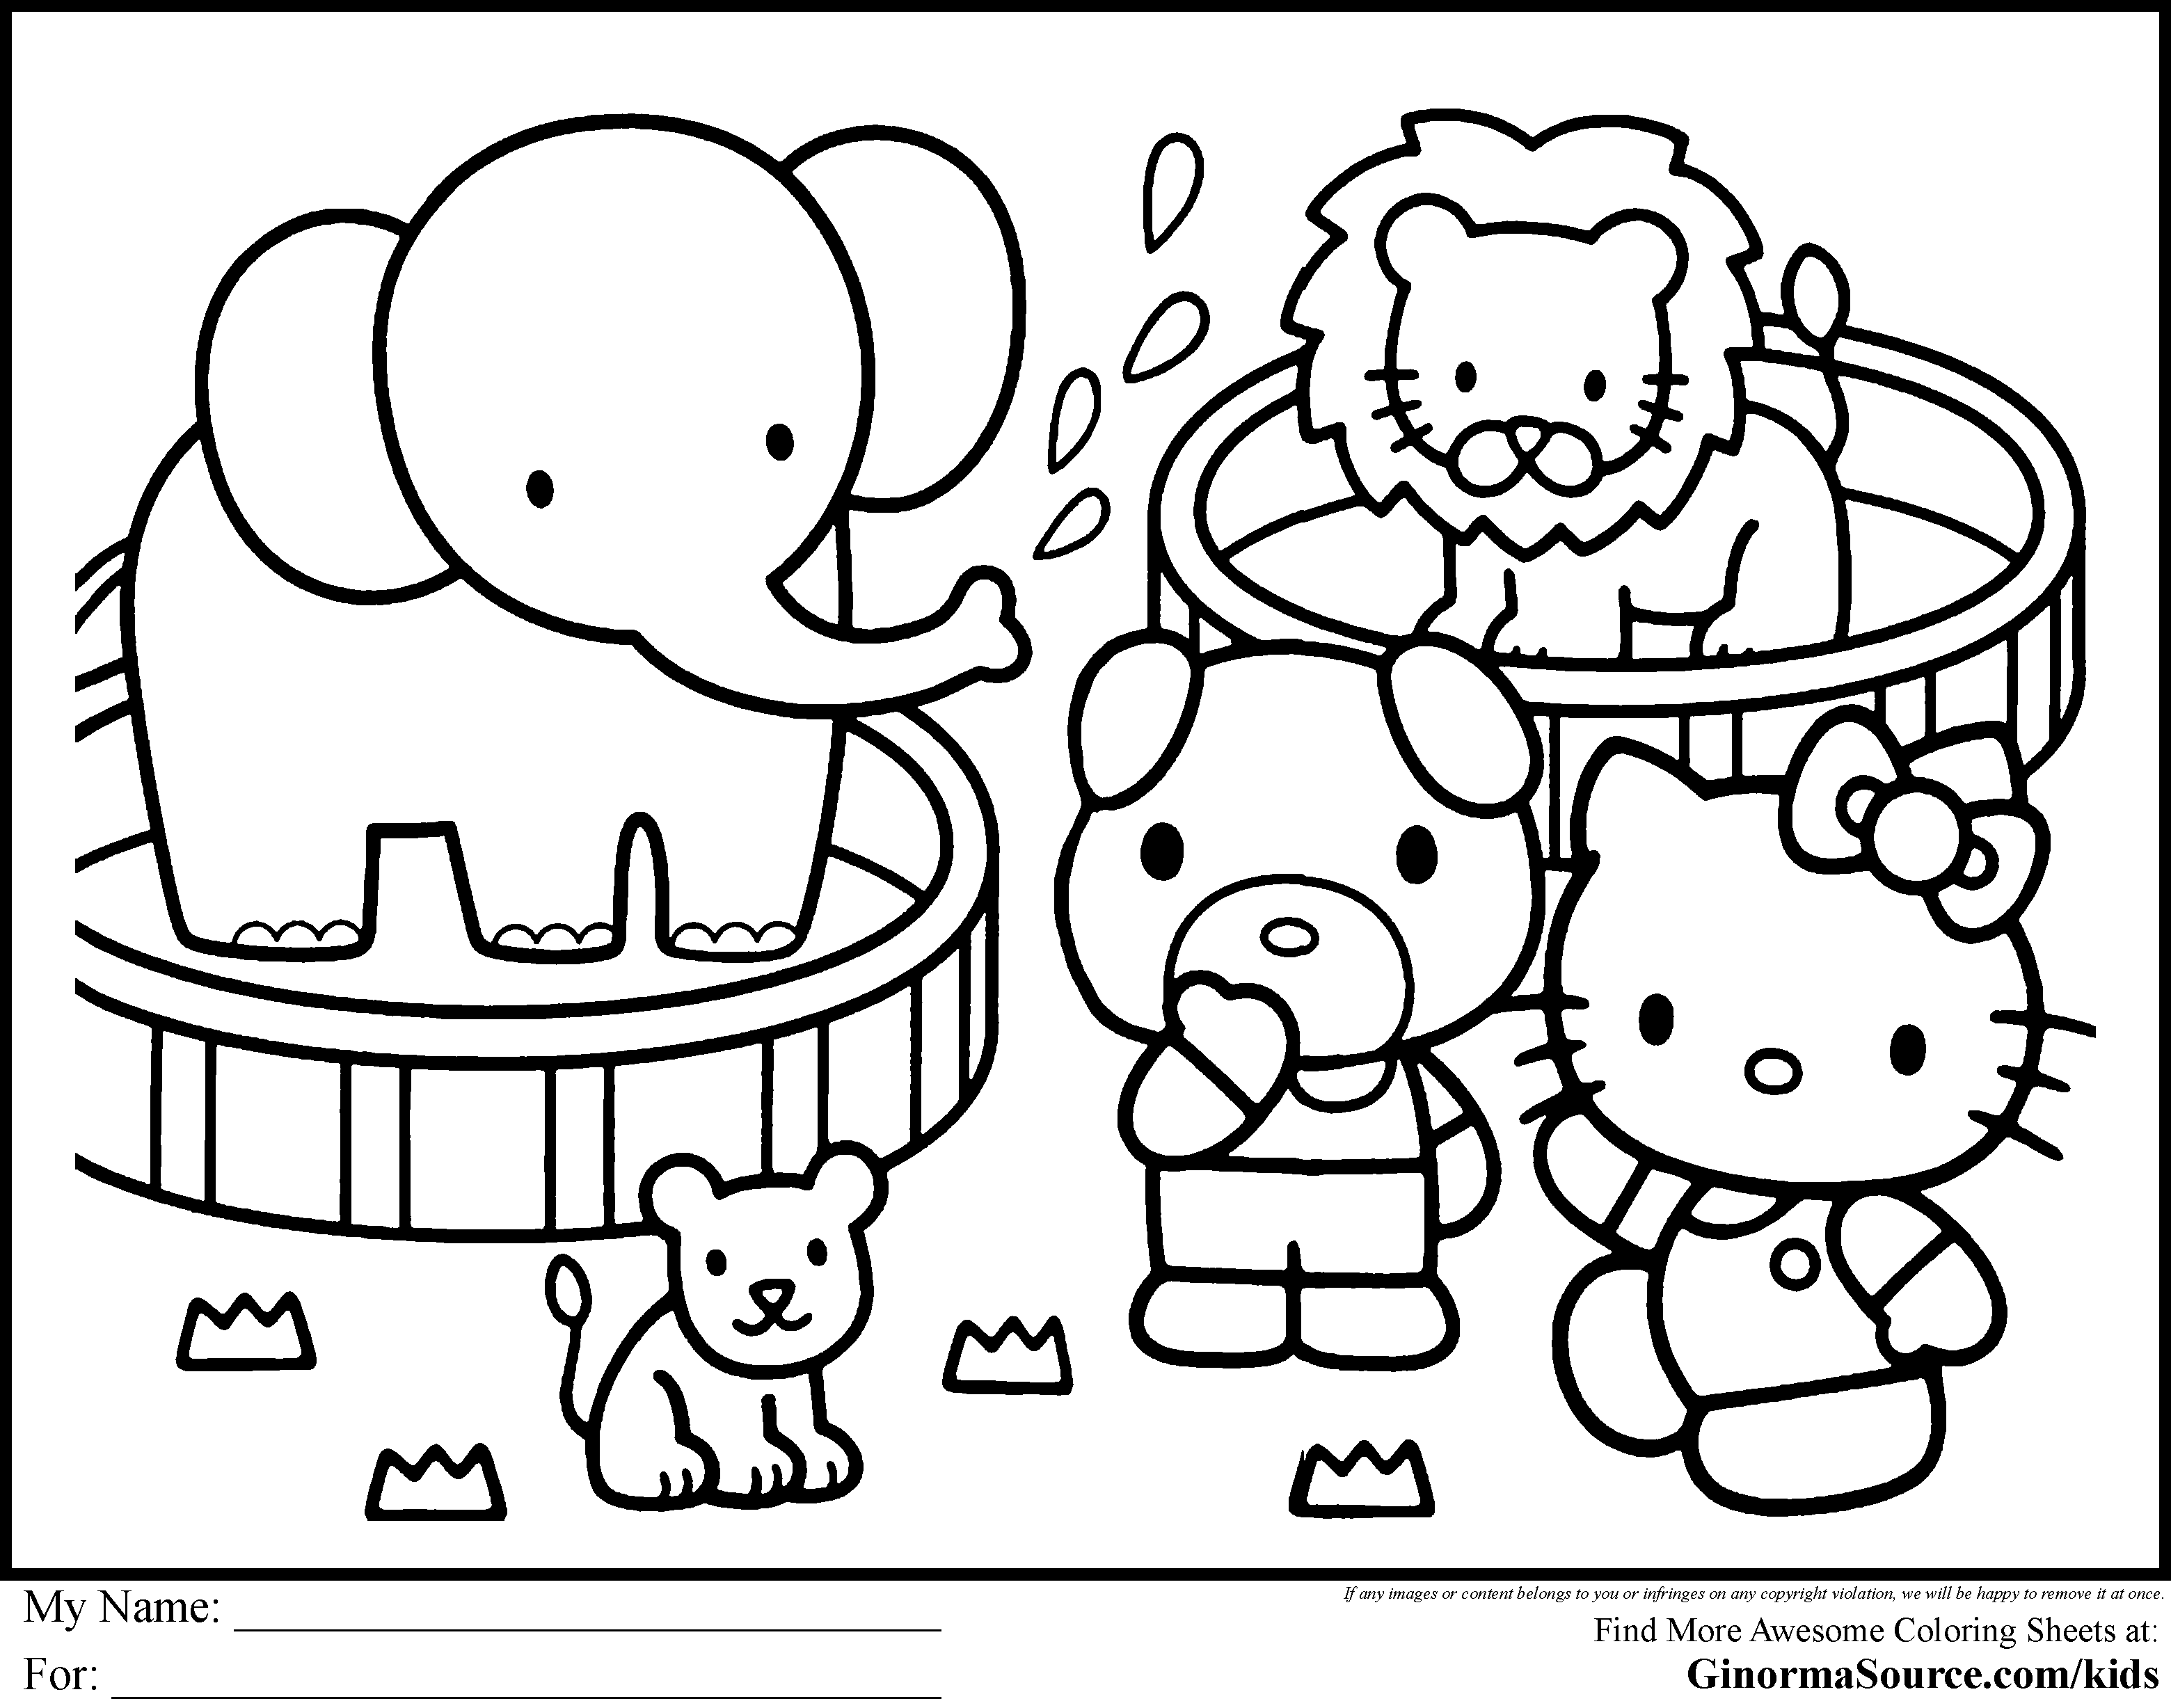 Pin by Mirka Janeckova on Kids Coloring  Pinterest  Hello kitty